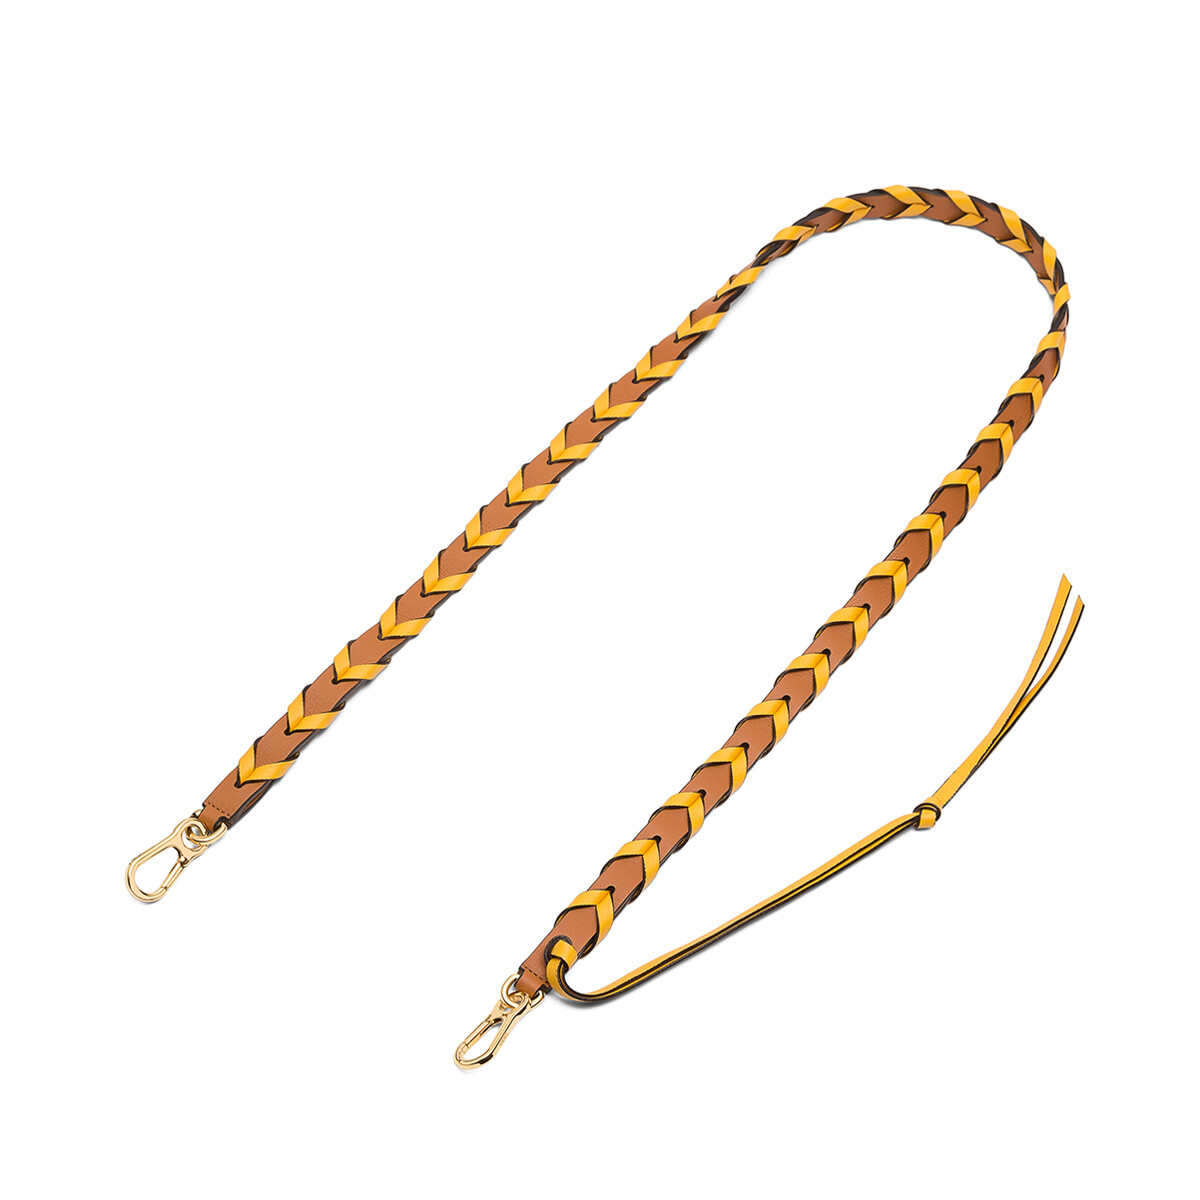 LOEWE Braided Thin Strap Light Caramel/Yellow Mango front